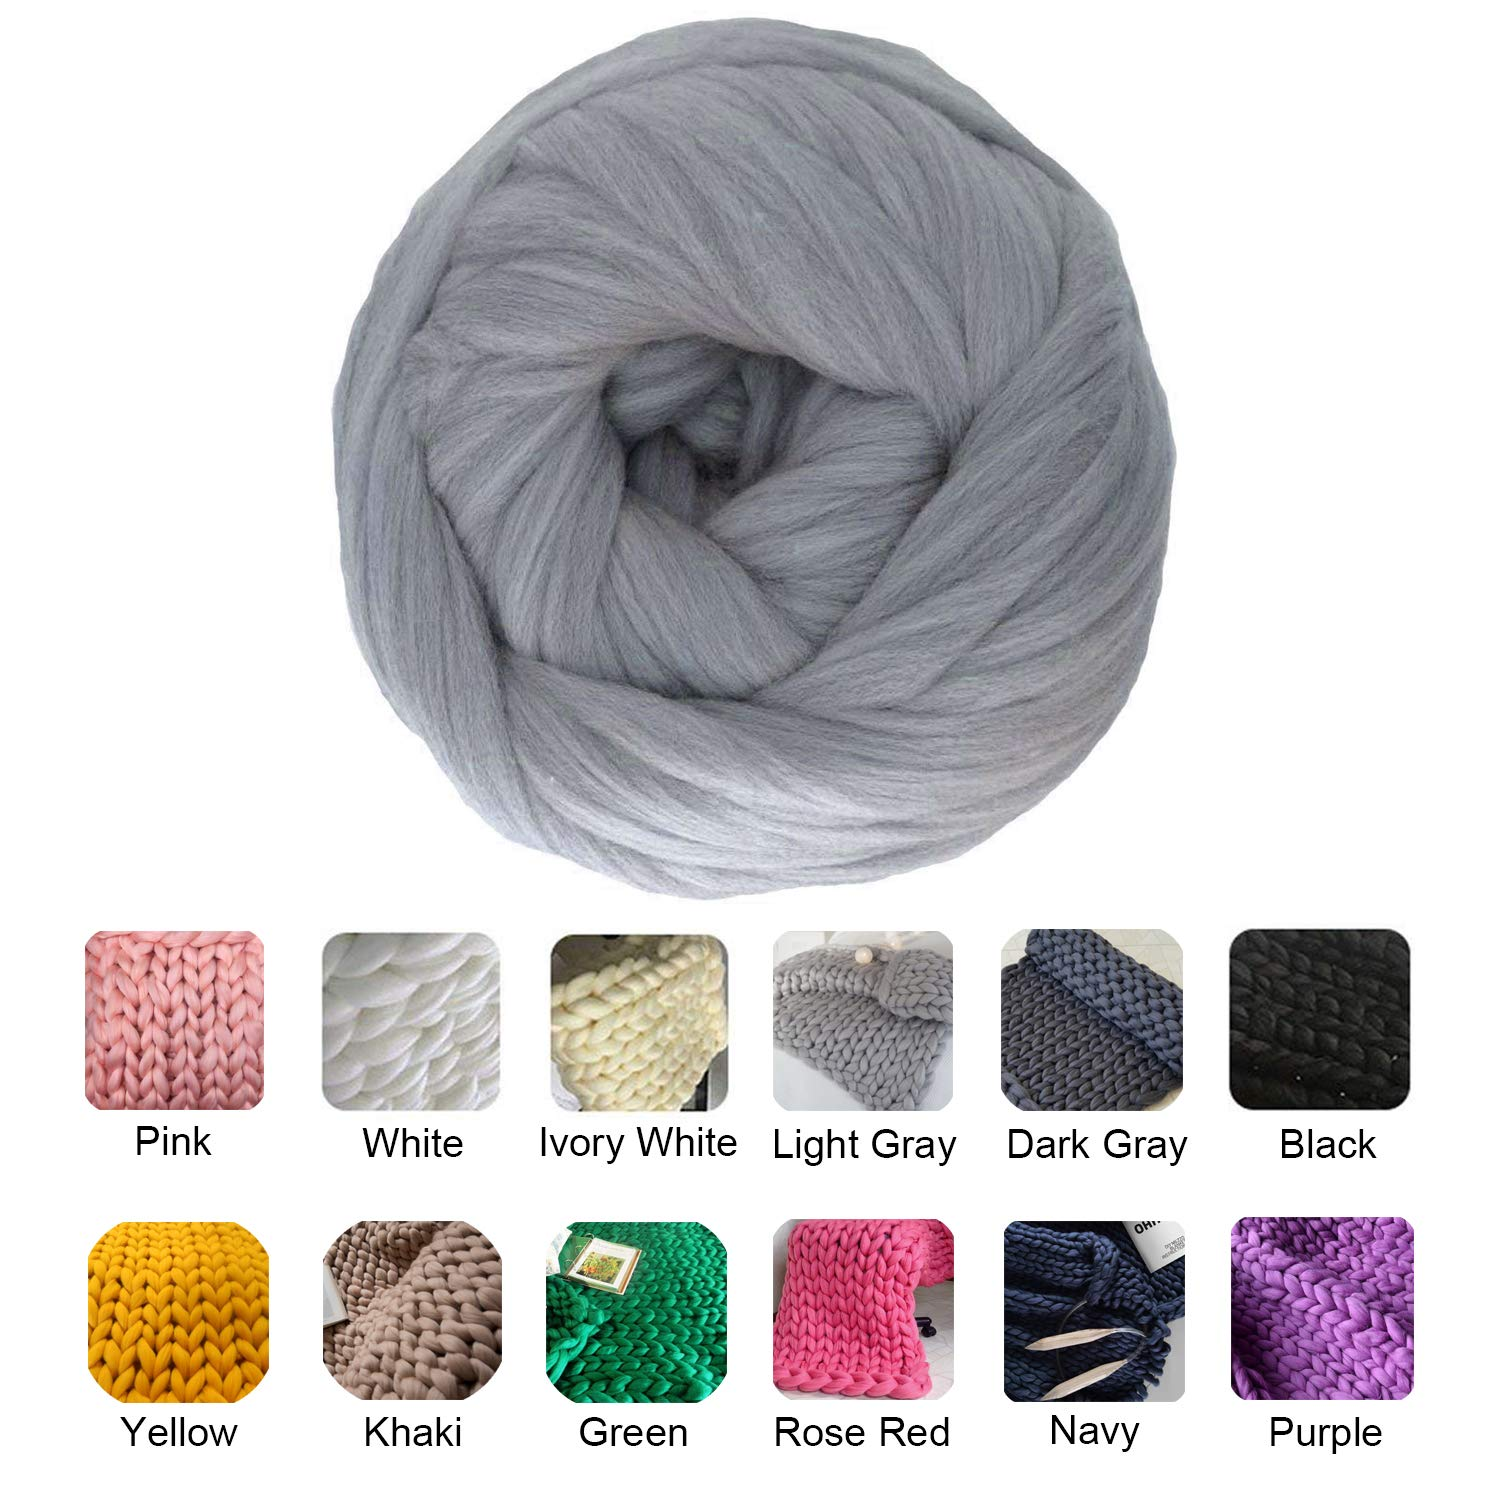 clootess Bulky Chunky Yarn Big Roving Wool for Hand Made Knitted DIY Sofa Bed Throw Blankets Light Grey 8 lbs = 3.6 kg